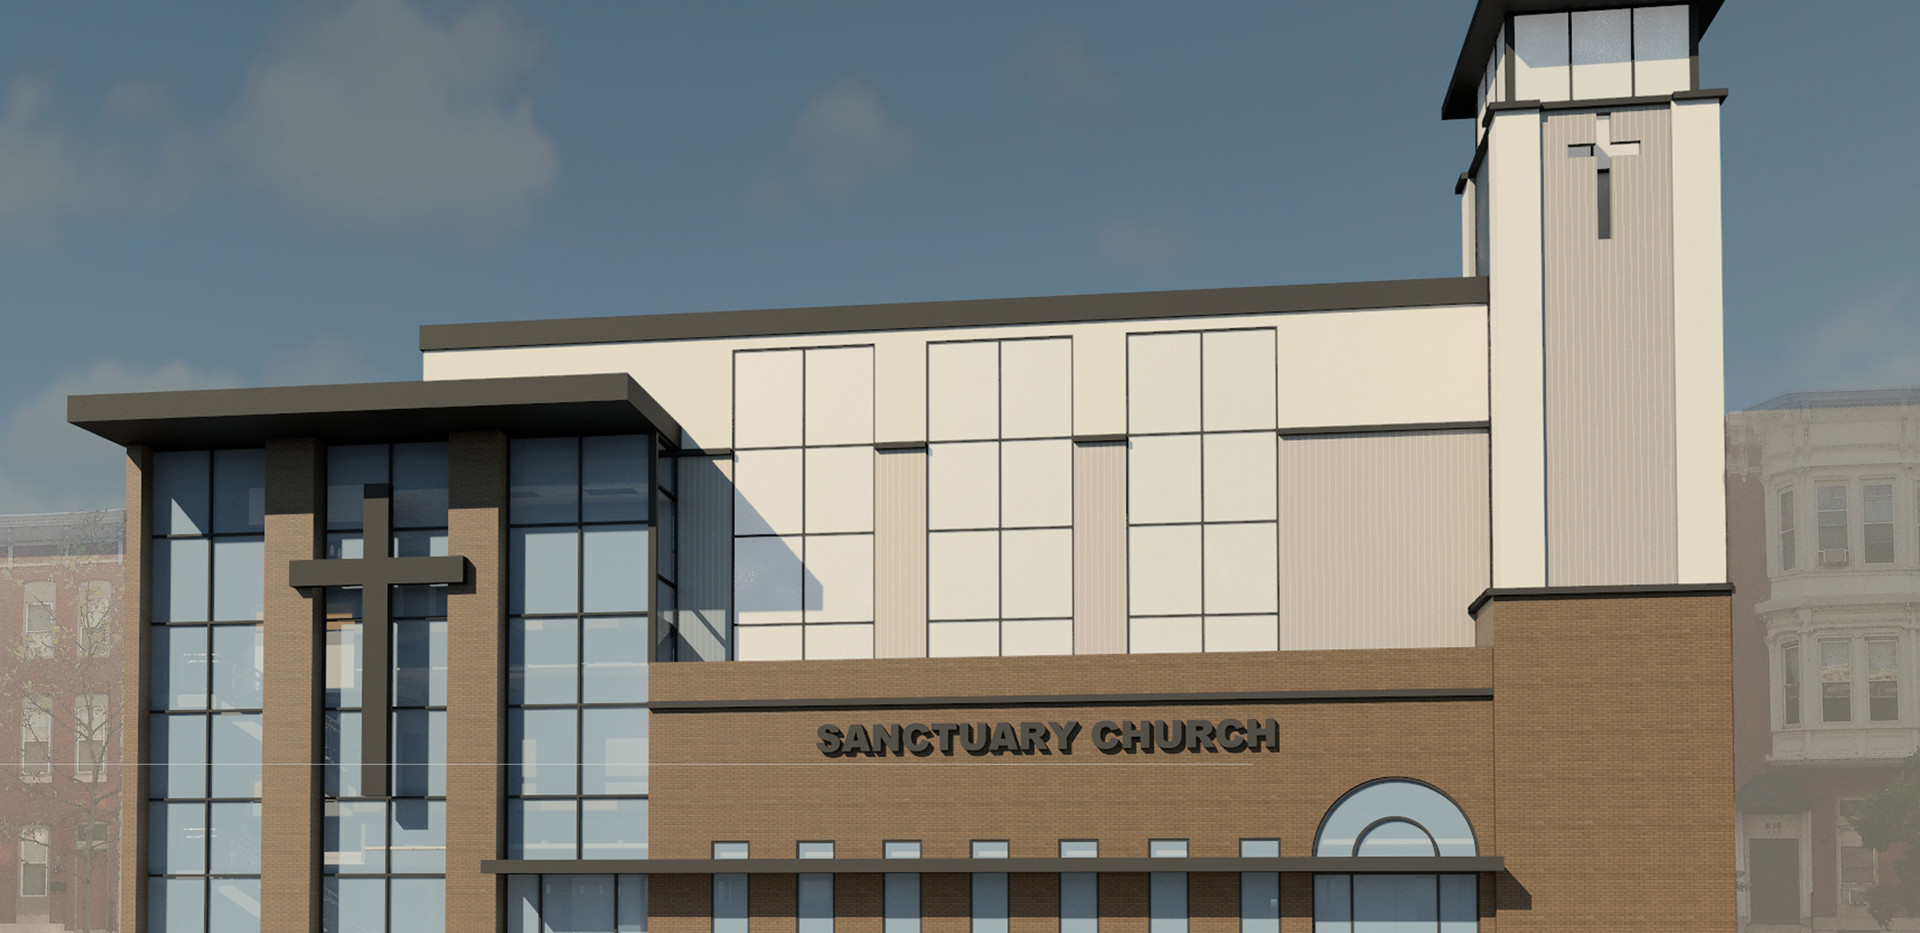 Sanctuary Church Day Time Elevation